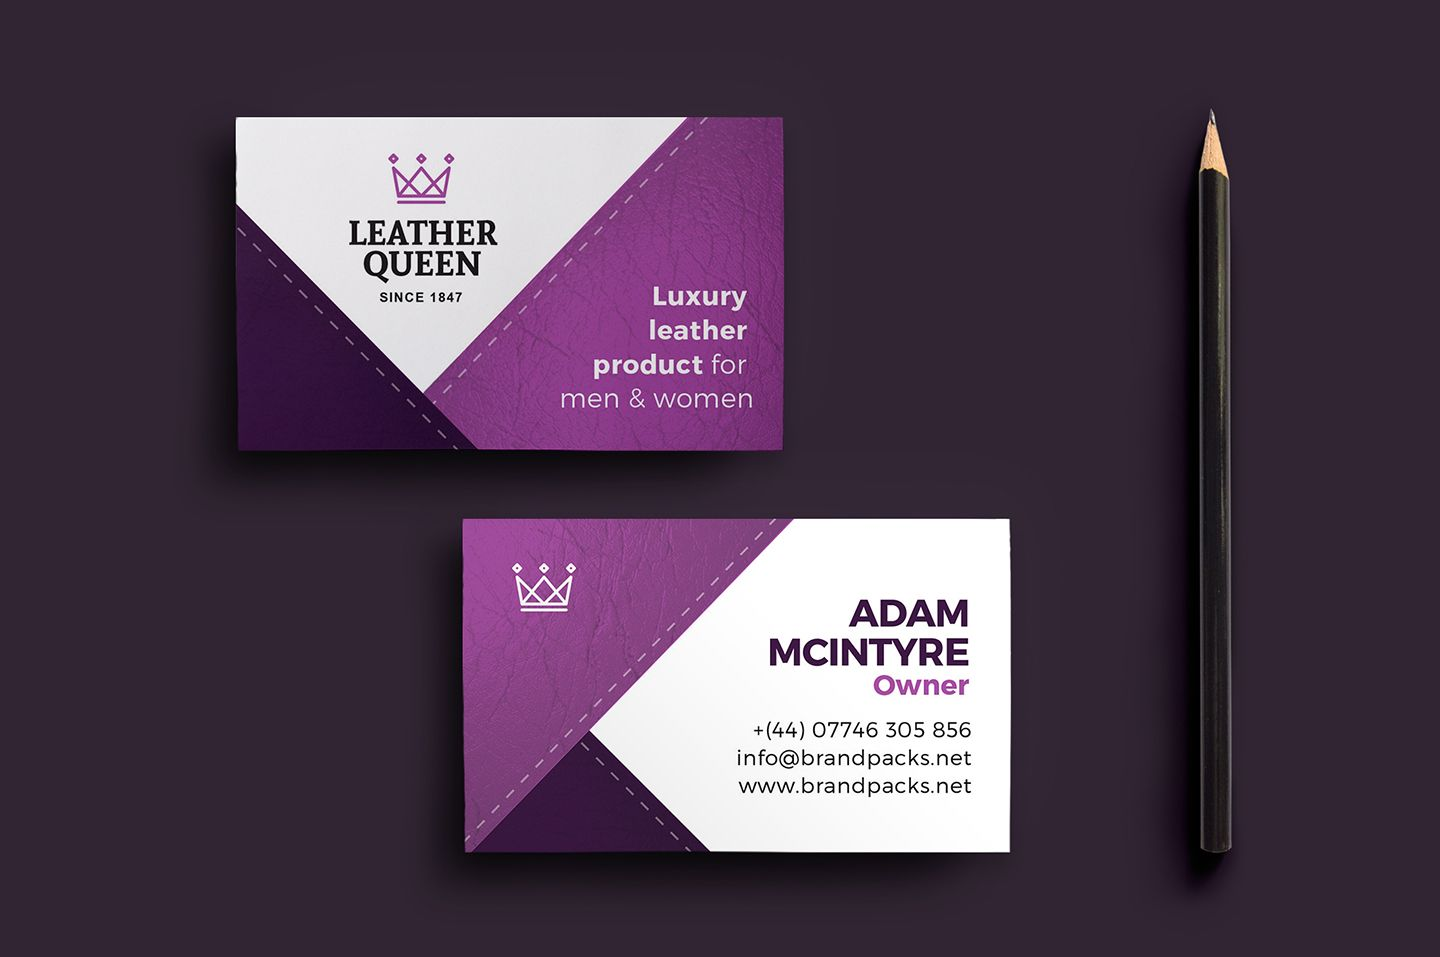 Free business card template for local shop owners works with free business card template for local shop owners works with adobephotoshop adobeillustrator fbccfo Images